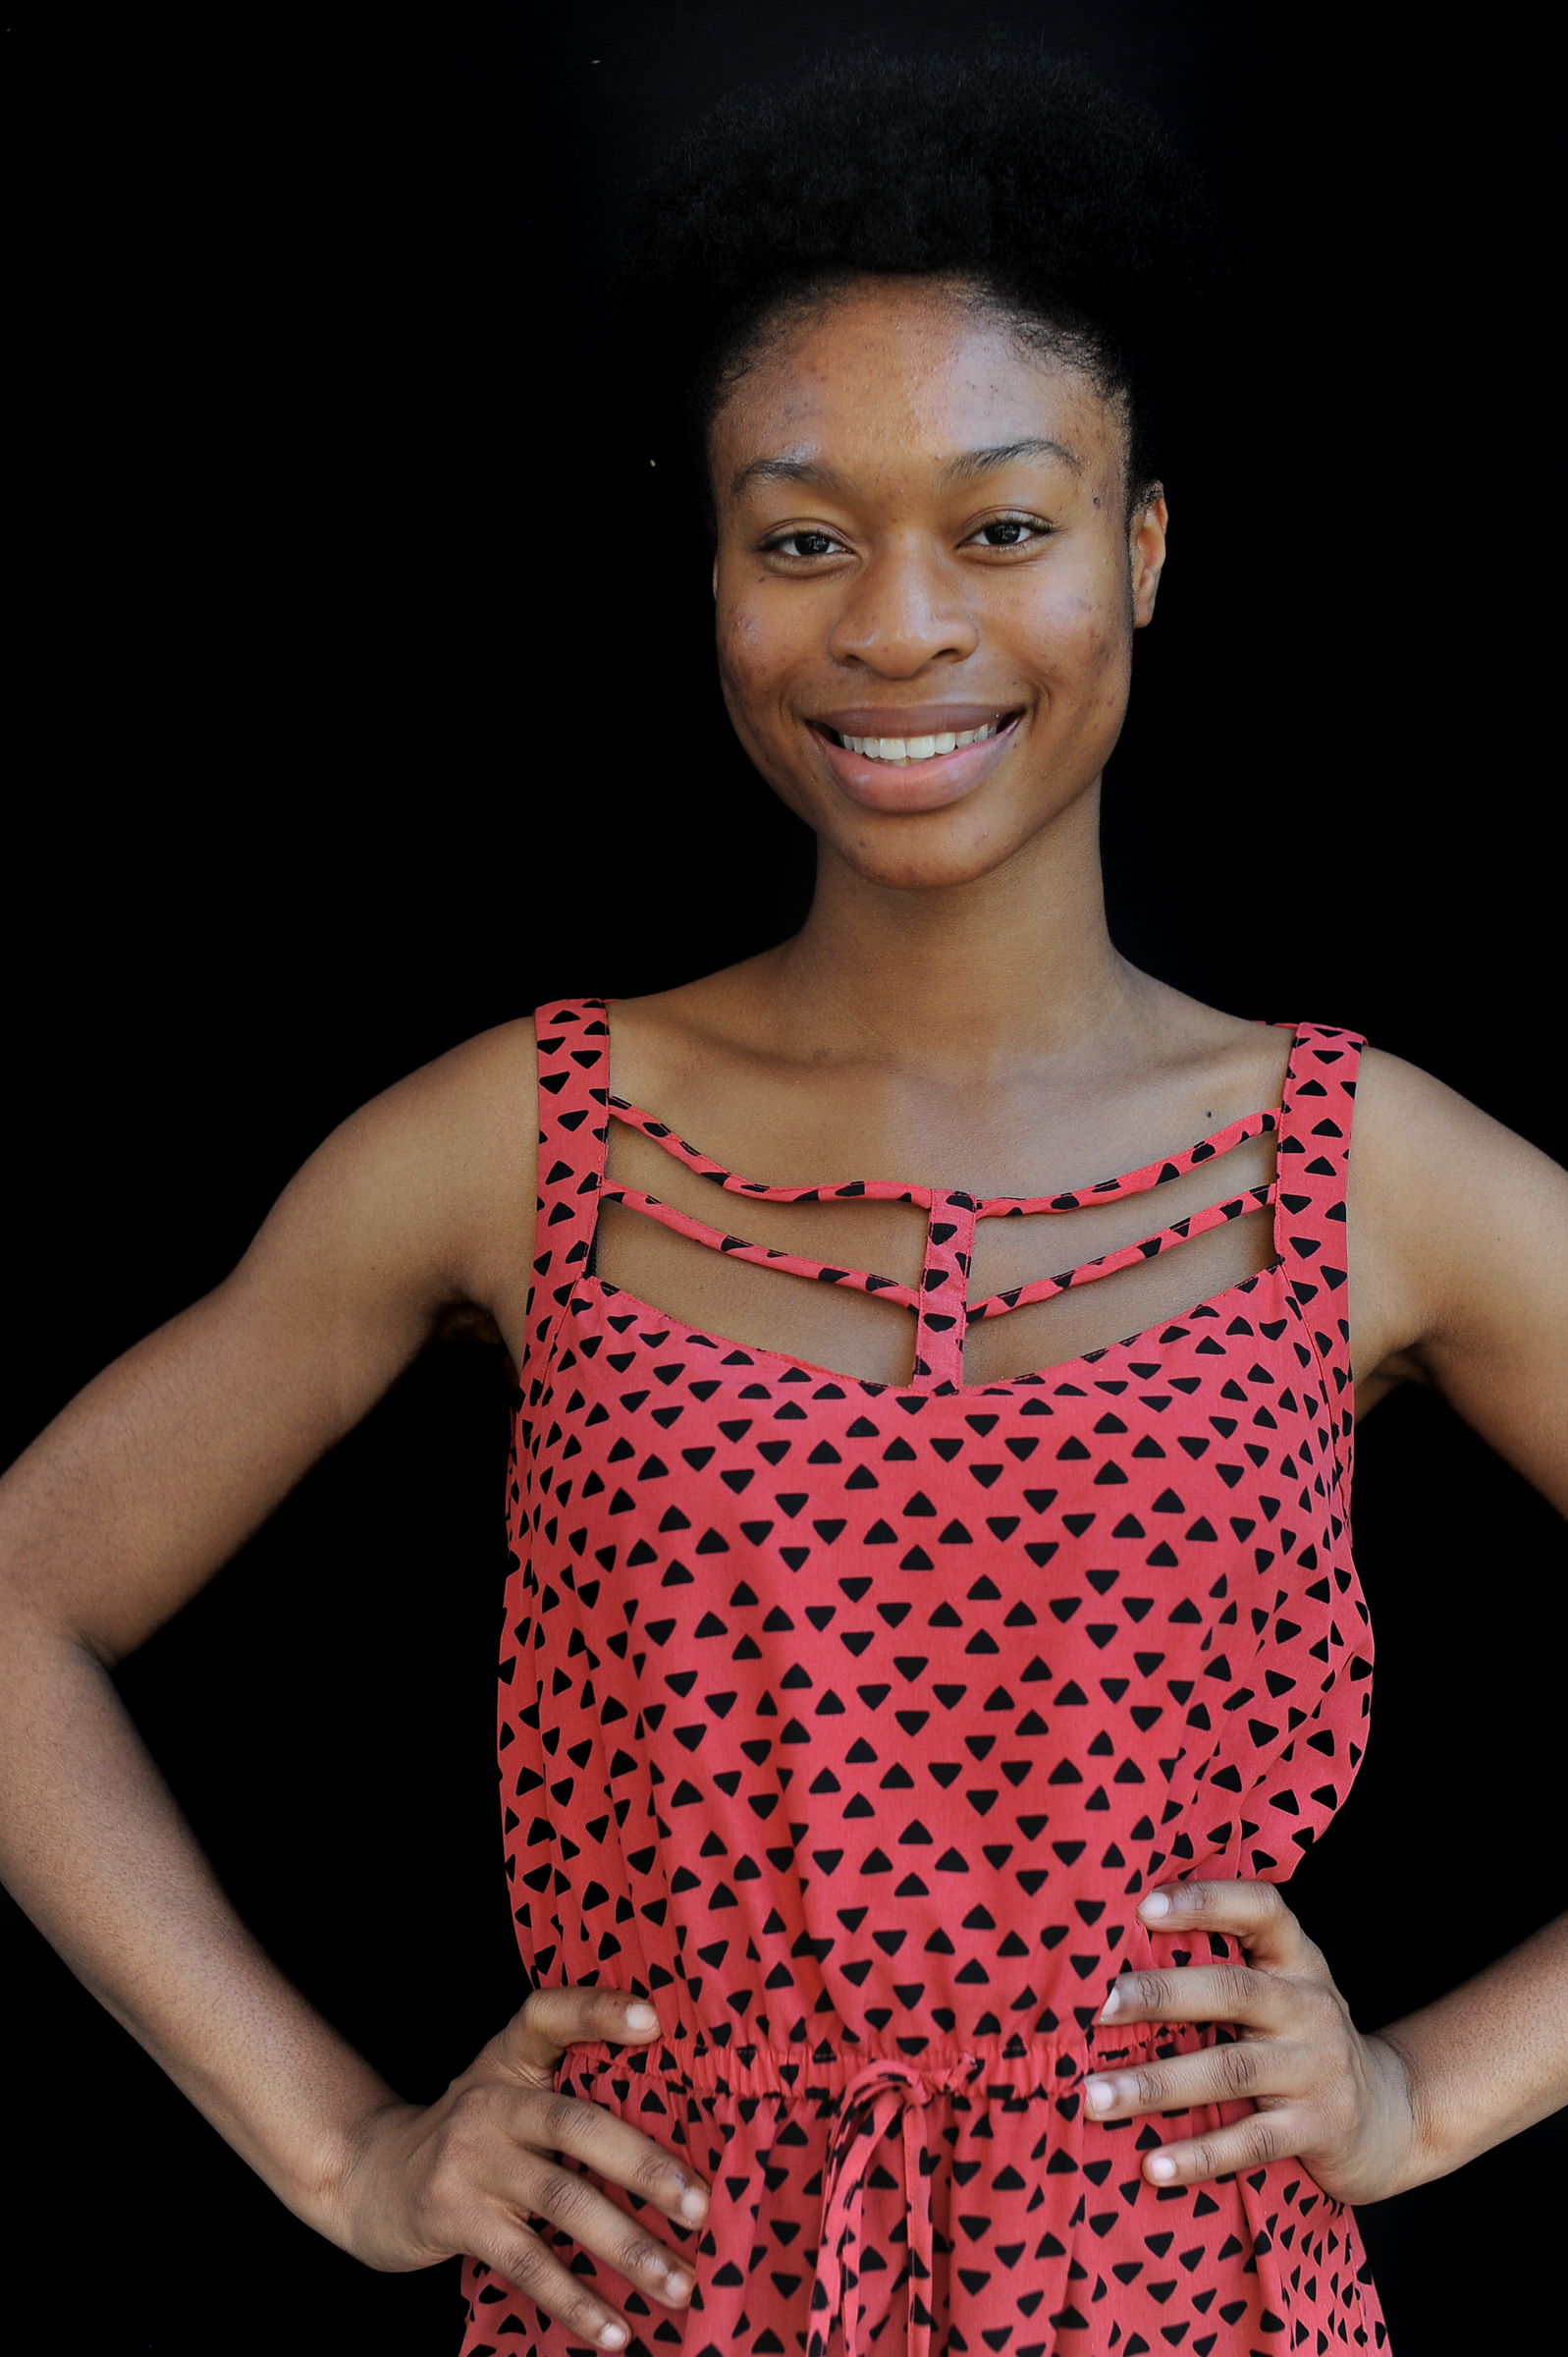 Name: Oluomachi OnyekwereClass Year: 2021Major: BiologyHometown: Maplewood, NJActivities: Running, listening to music, dancingIf you could make up a major, what would it be?: Creative Biology Why would you be on the front page of The Cornell Daily Sun?: Research on post-surgery stressBlurb: Always resilient